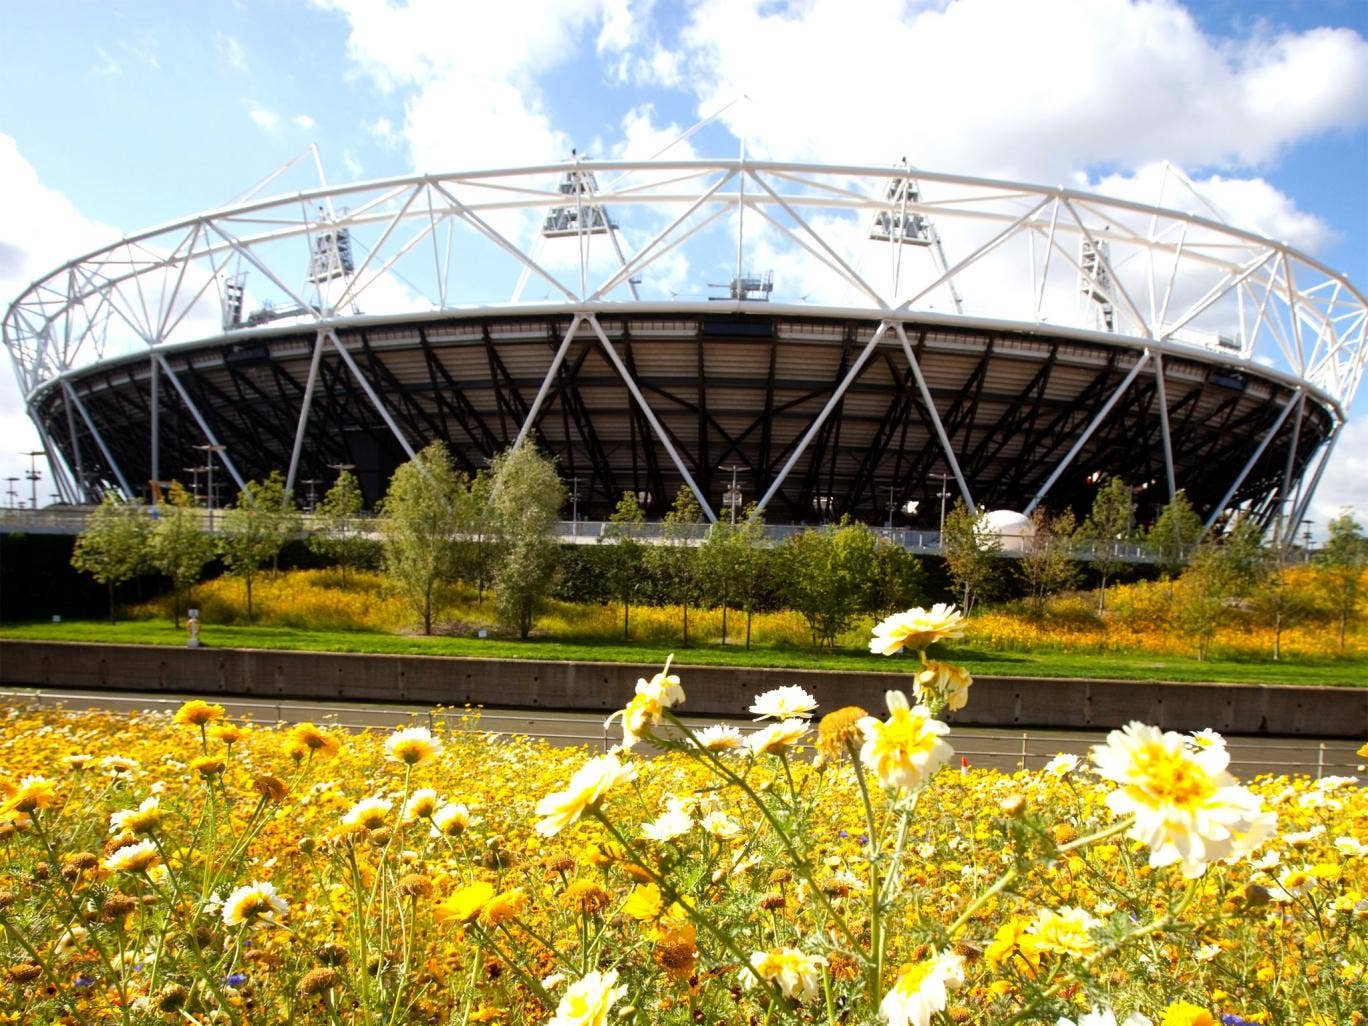 The Olympic Stadium's future is still not agreed